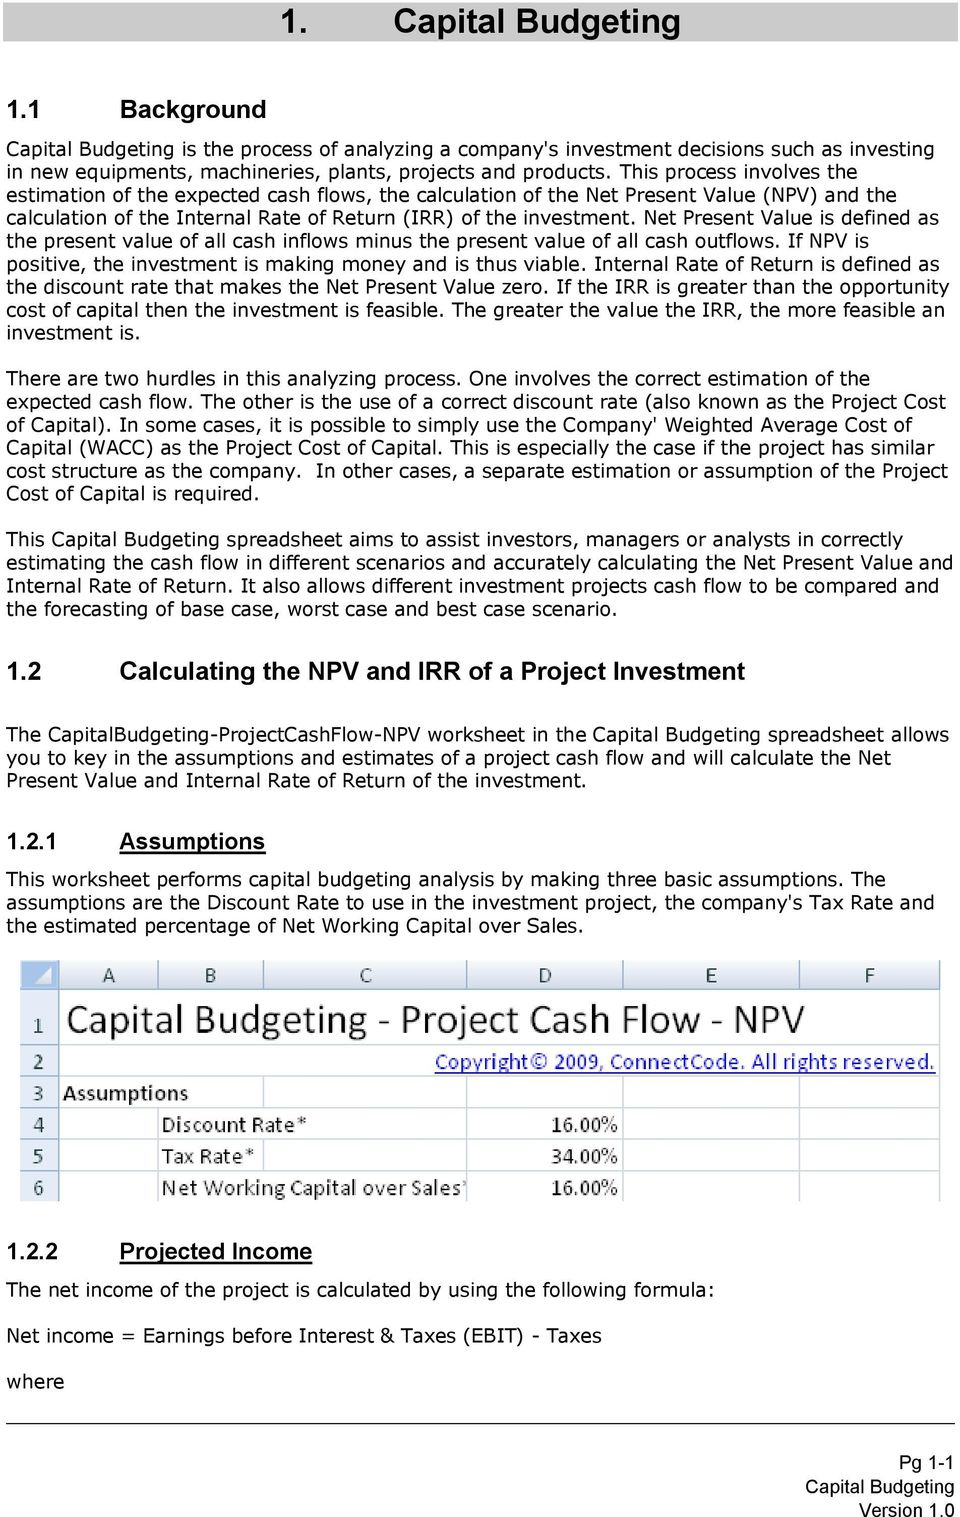 Net Present Value is defined as the present value of all cash inflows minus the present value of all cash outflows. If NPV is positive, the investment is making money and is thus viable.